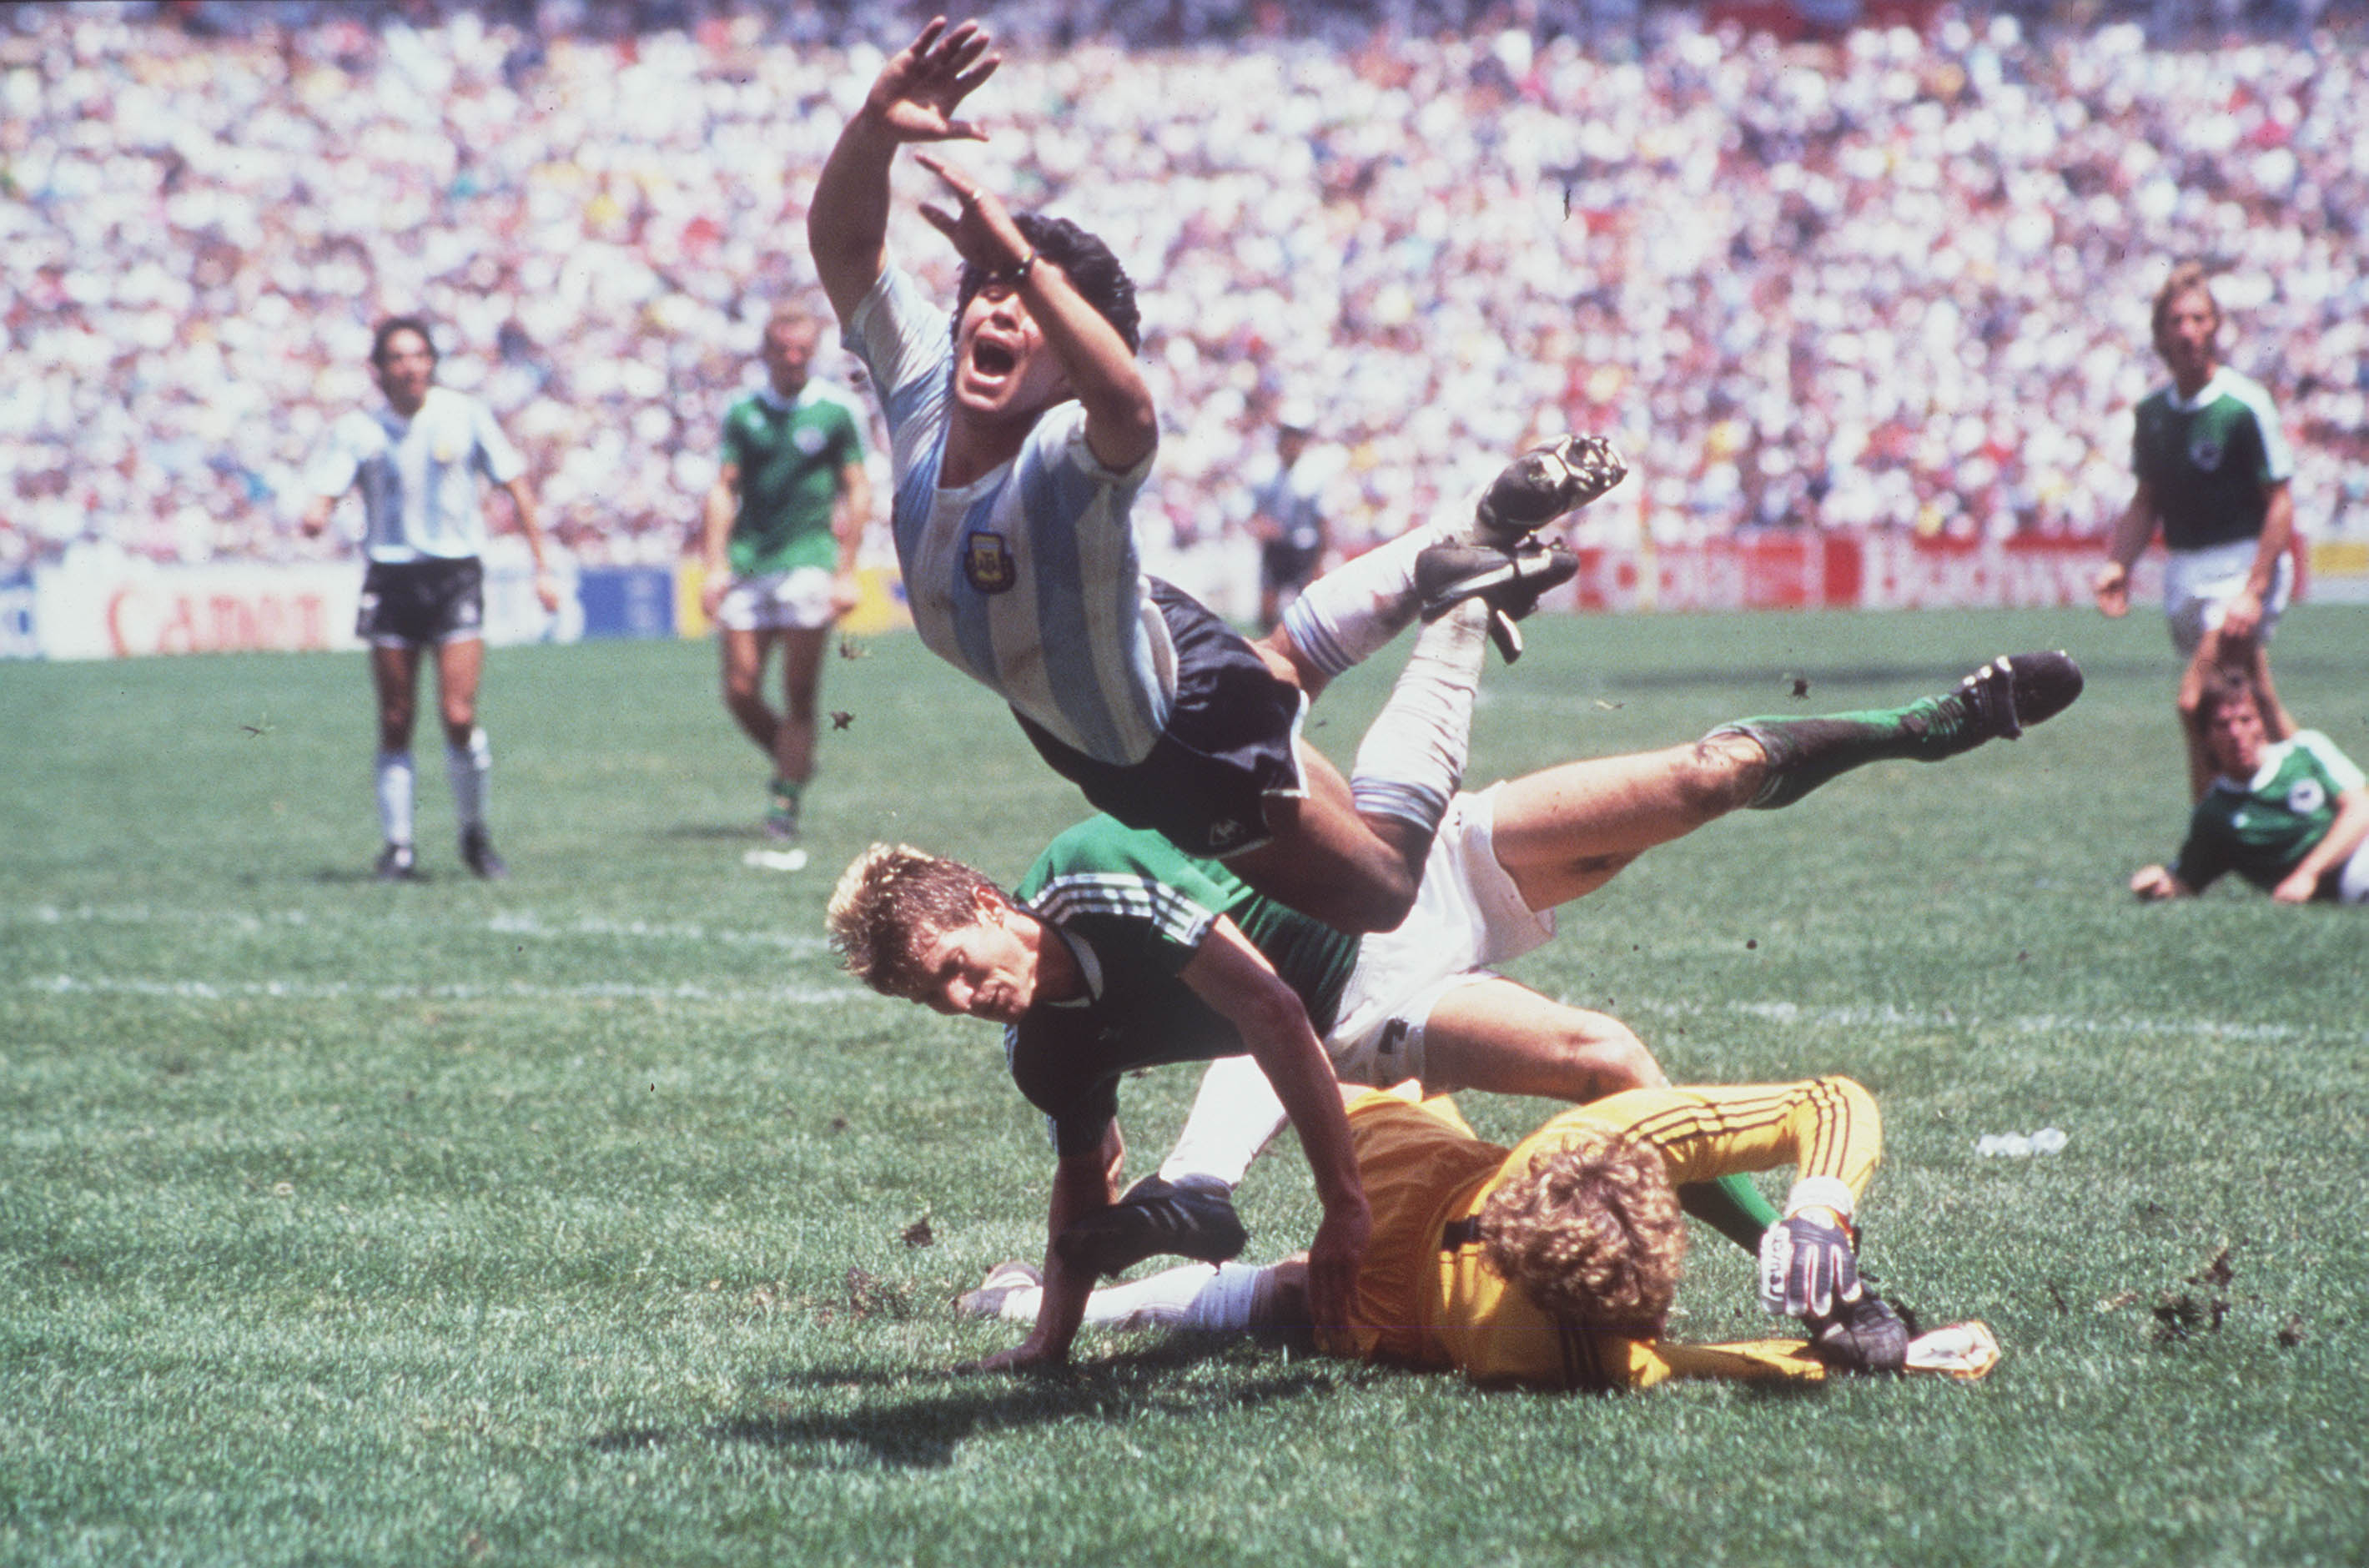 1986 World Cup Final, Azteca Stadium, Mexico, 29th June, 1986, Argentina 3 v West Germany 2, Argentina's Diego Maradona goes flying over the challenges of West German goalkeeper Harald Schumacher and defender Karl Heinz Foerster  (Photo by Bob Thomas/Getty Images)